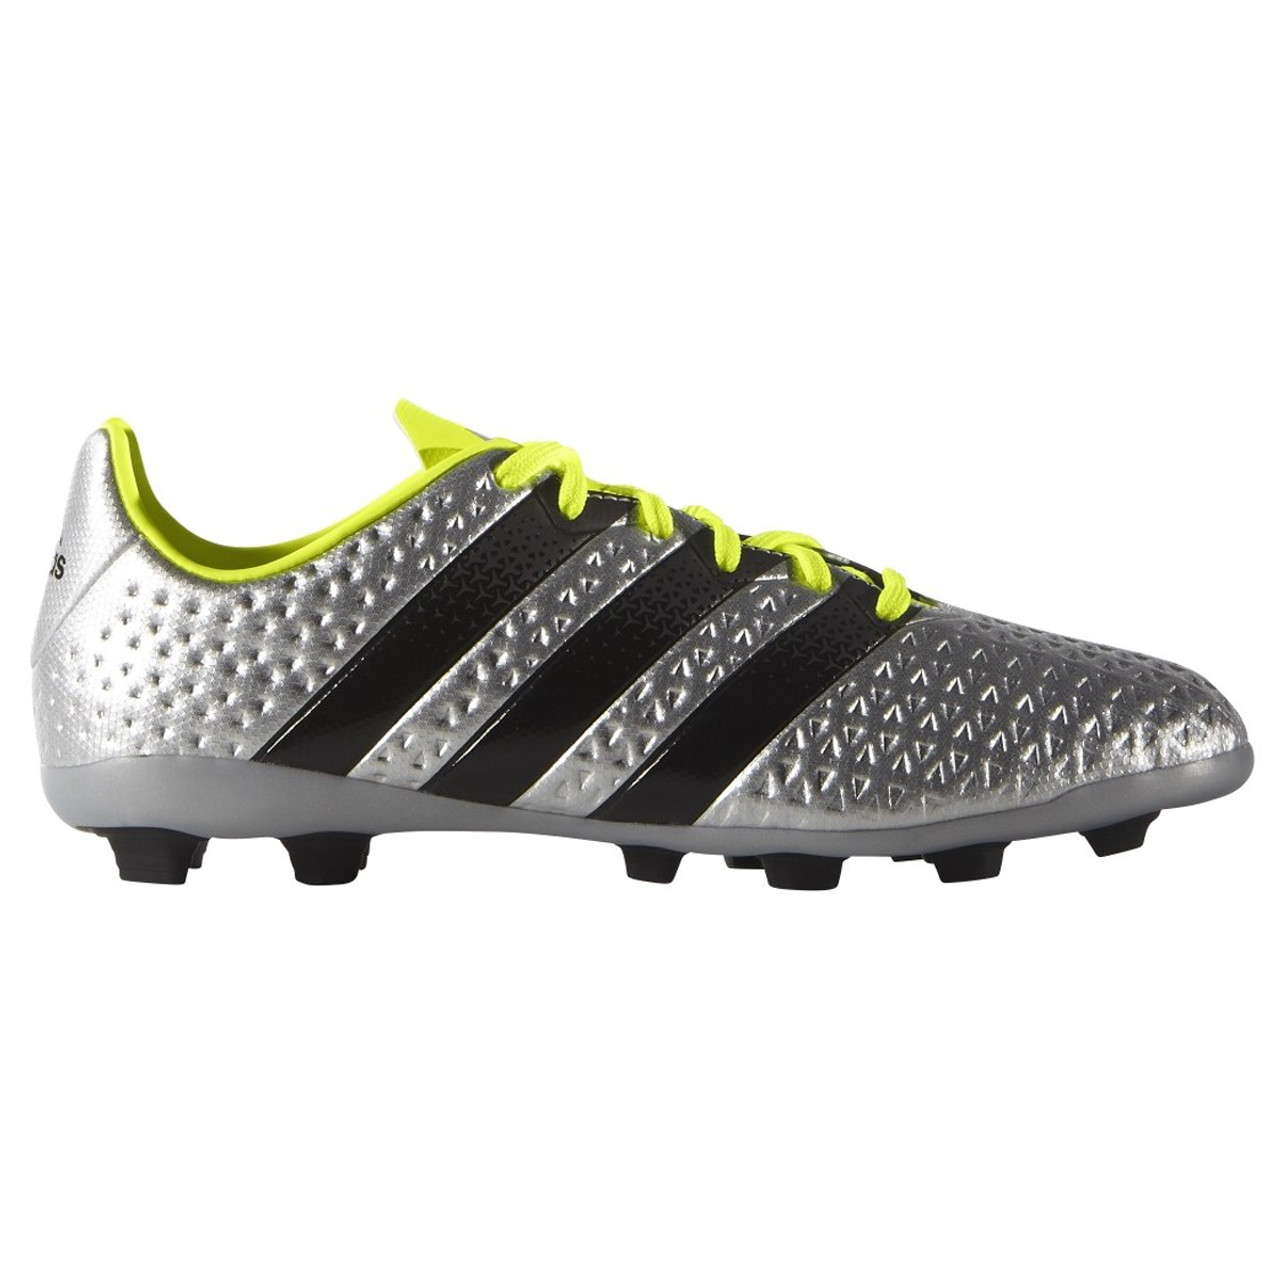 sports shoes 91e8e e8bb8 Adidas Ace 16.4 FxG Junior Soccer Cleat S42142 - Silver, Black, Yellow